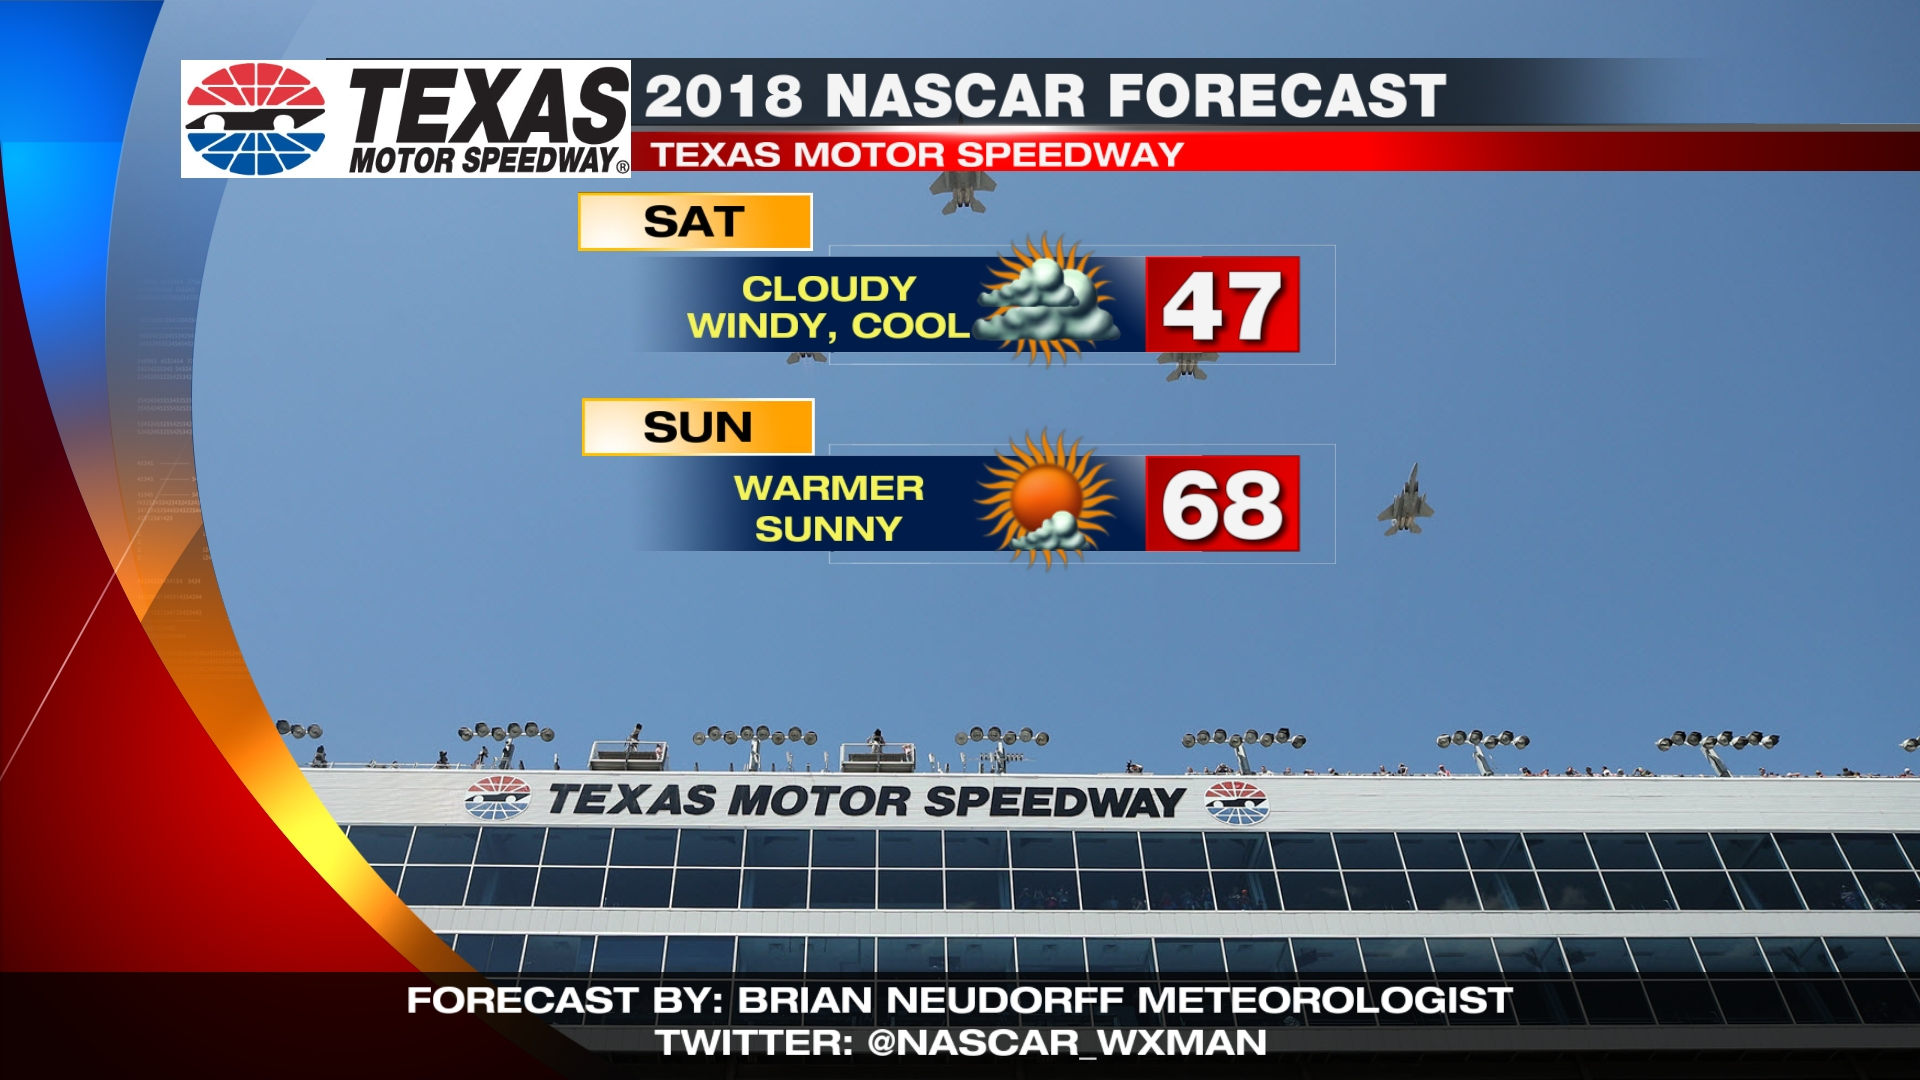 Nascar wx man texas motor speedway for Texas motor speedway schedule this weekend